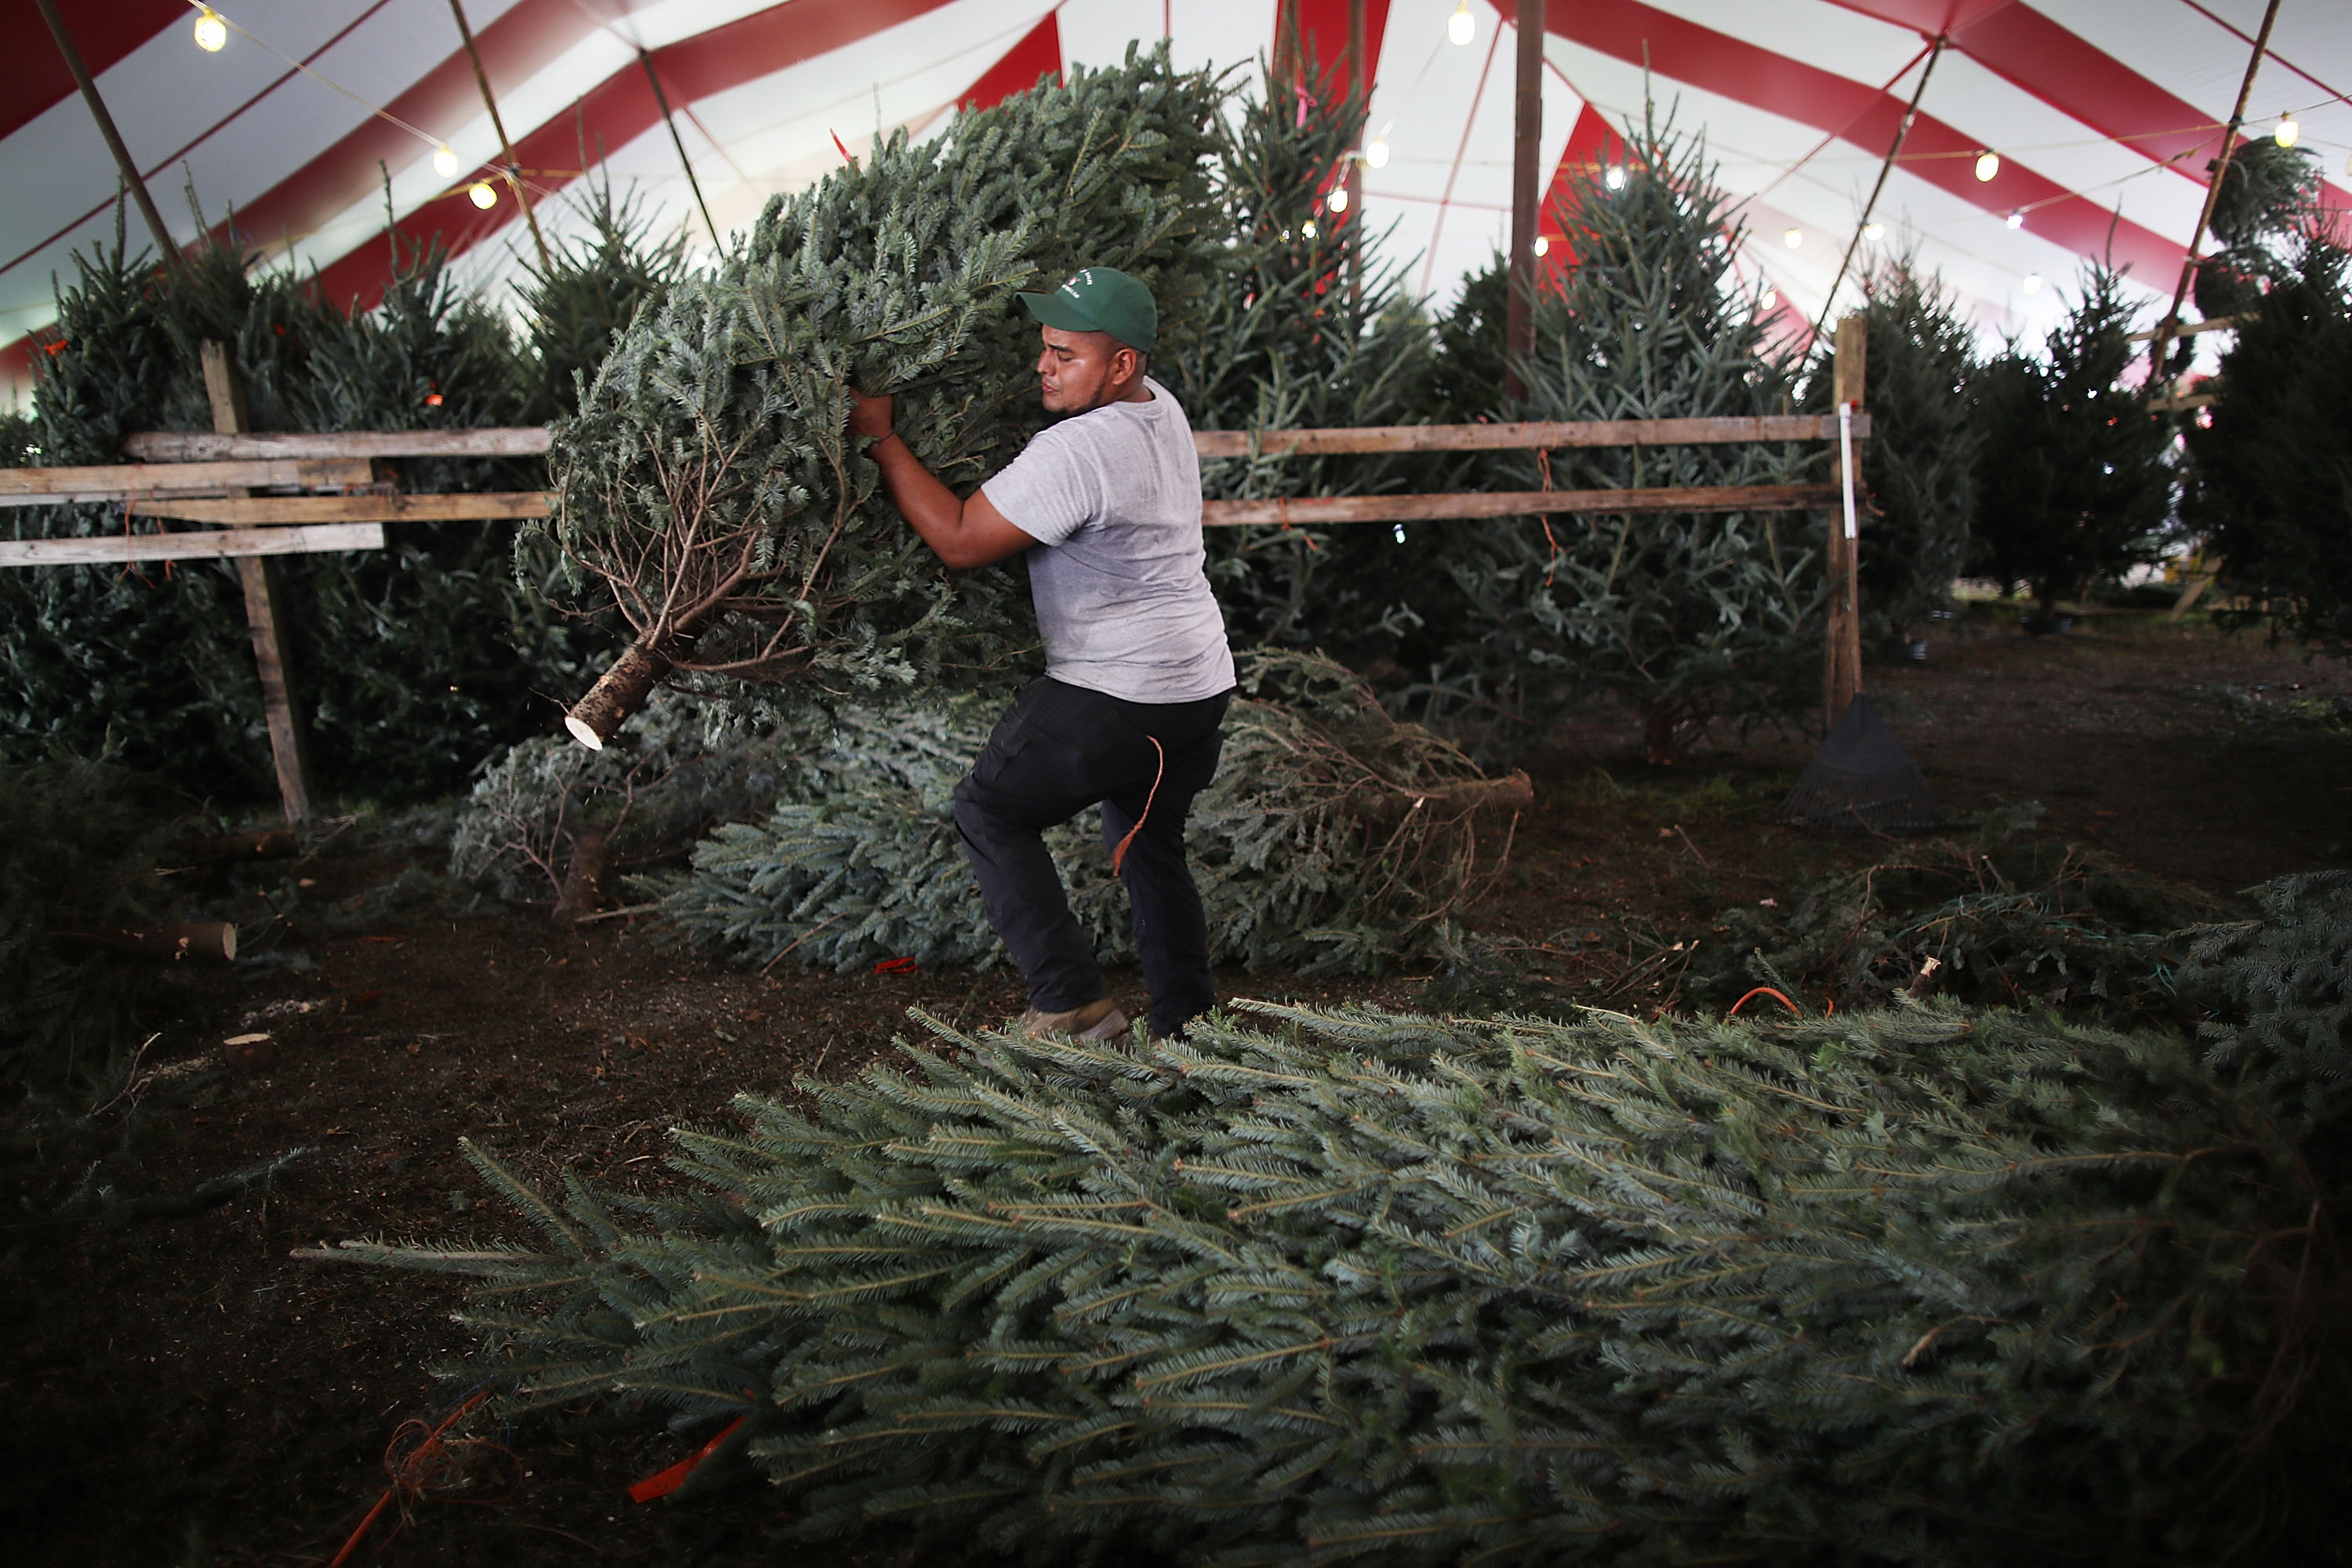 Fort Worth Trash Pickup Schedule Christmas 2020 What to do with your tree in Dallas Fort Worth now that Christmas